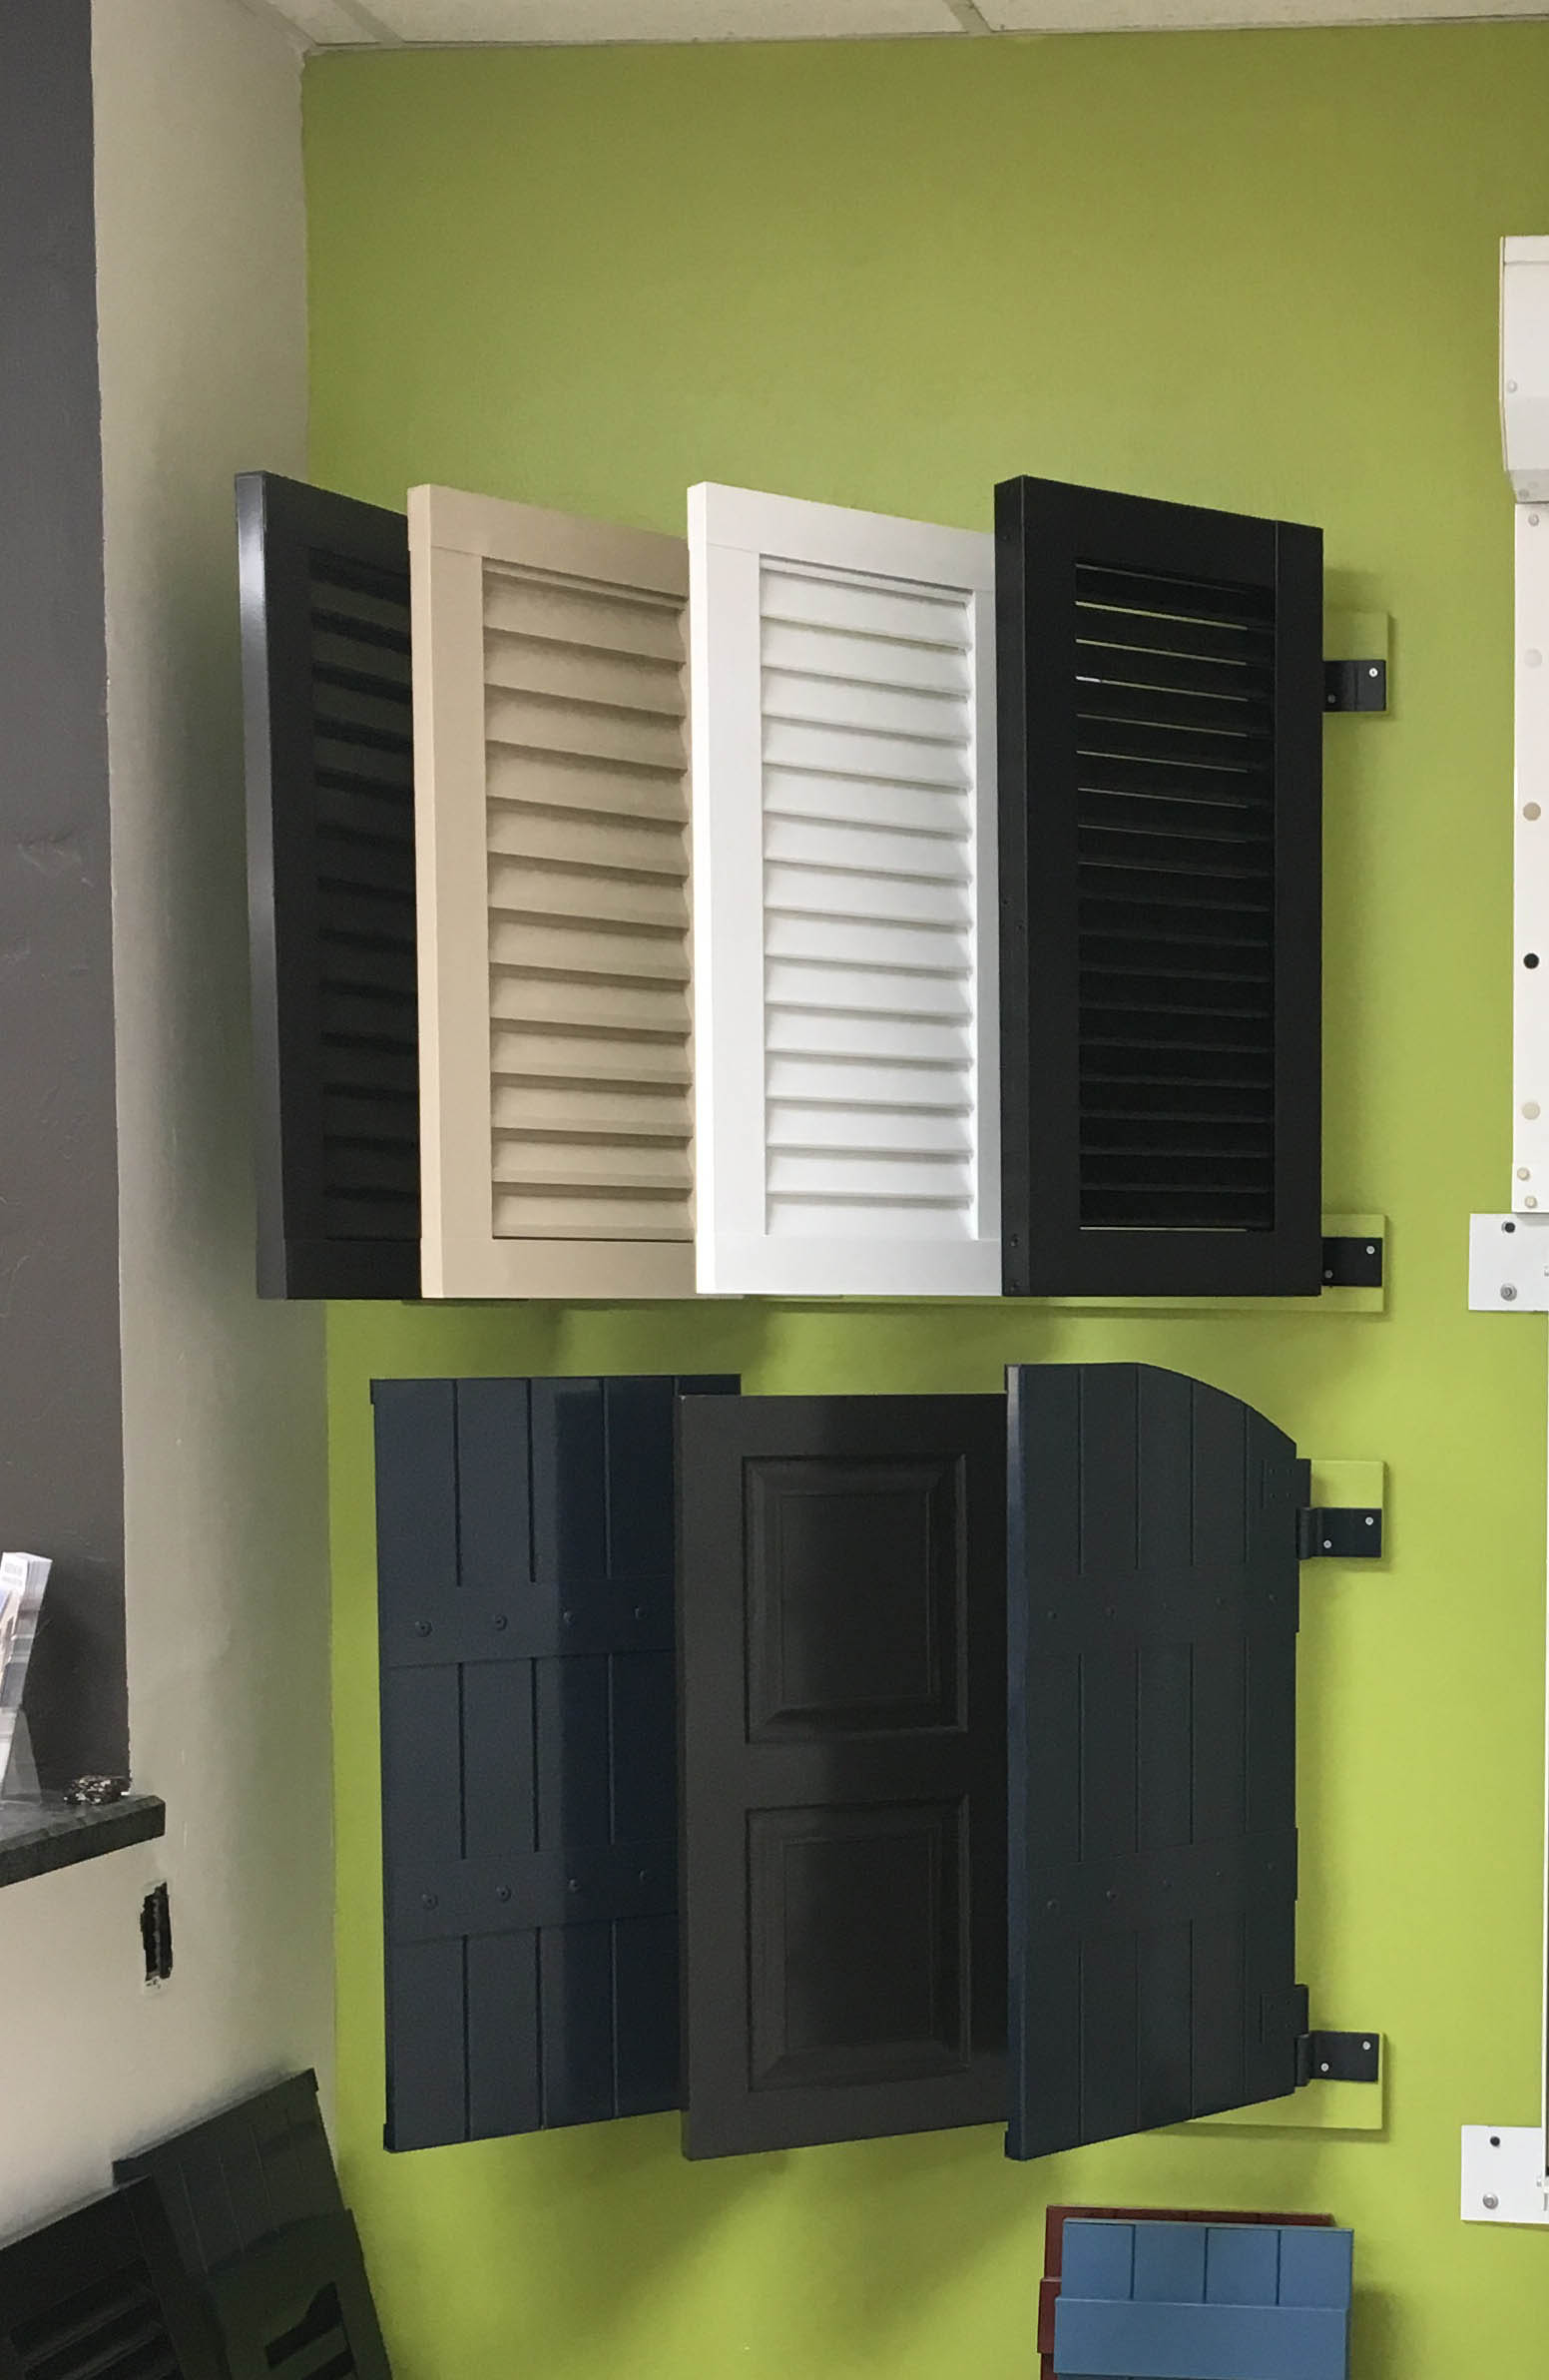 Window Treatments Naples Fl Part - 40: Naples, Florida, June 13th, 2017u2014Naples Shutter, A Local Manufacturer And  Provider Of Plantation Shutters And Window Treatments Announces Its New  Line Of ...